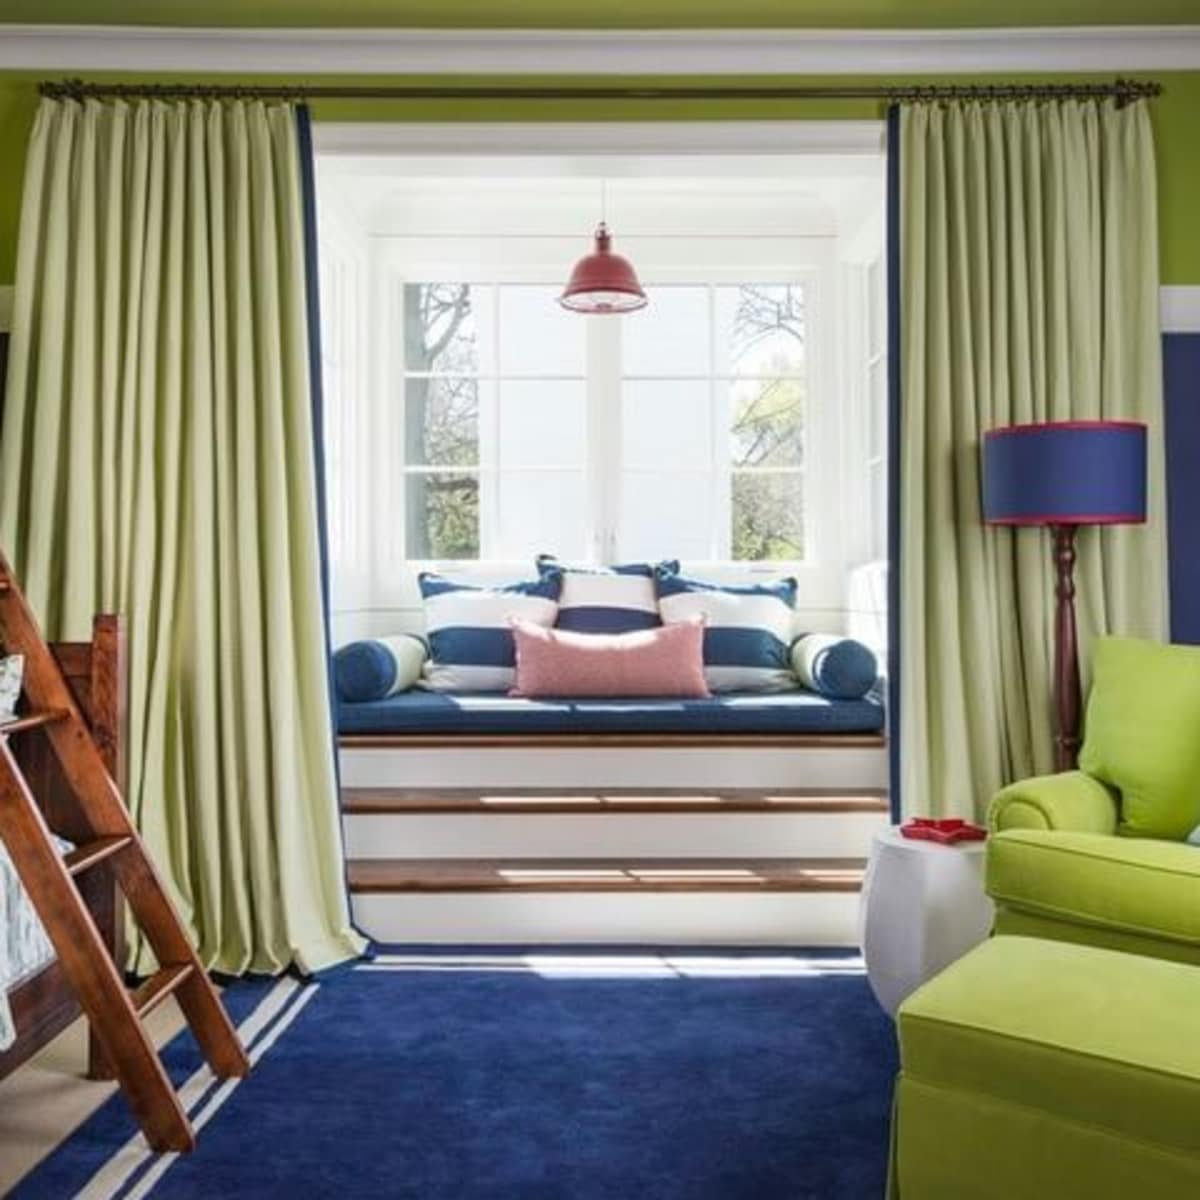 Houzz Dallas house home Alexander Drive stress-free style kid room